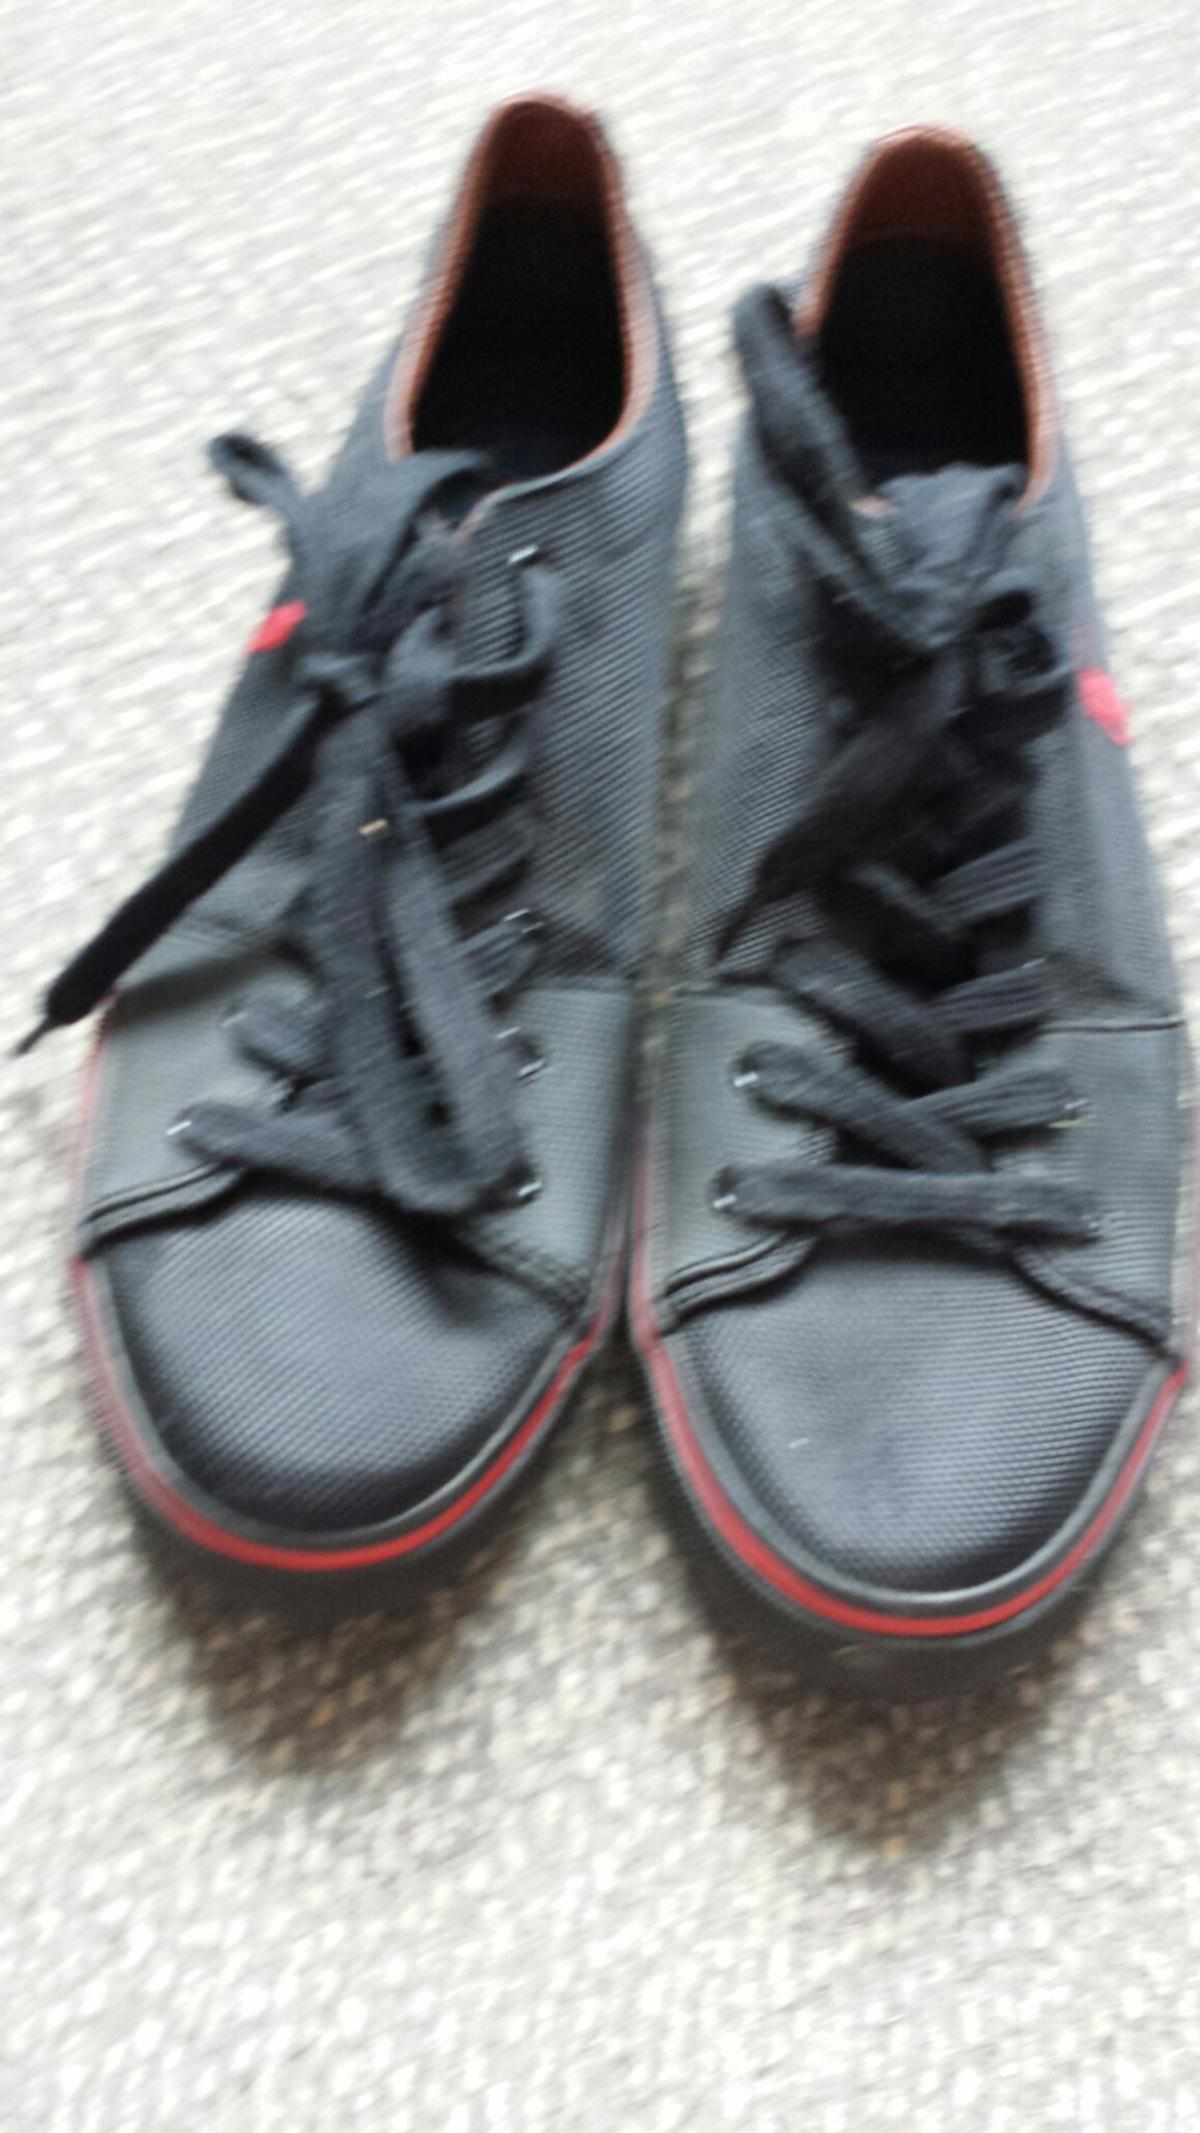 Ralph Lauren Polo sneaker/shoe size 43. Hardly worn, cost £110, Bargain at £30